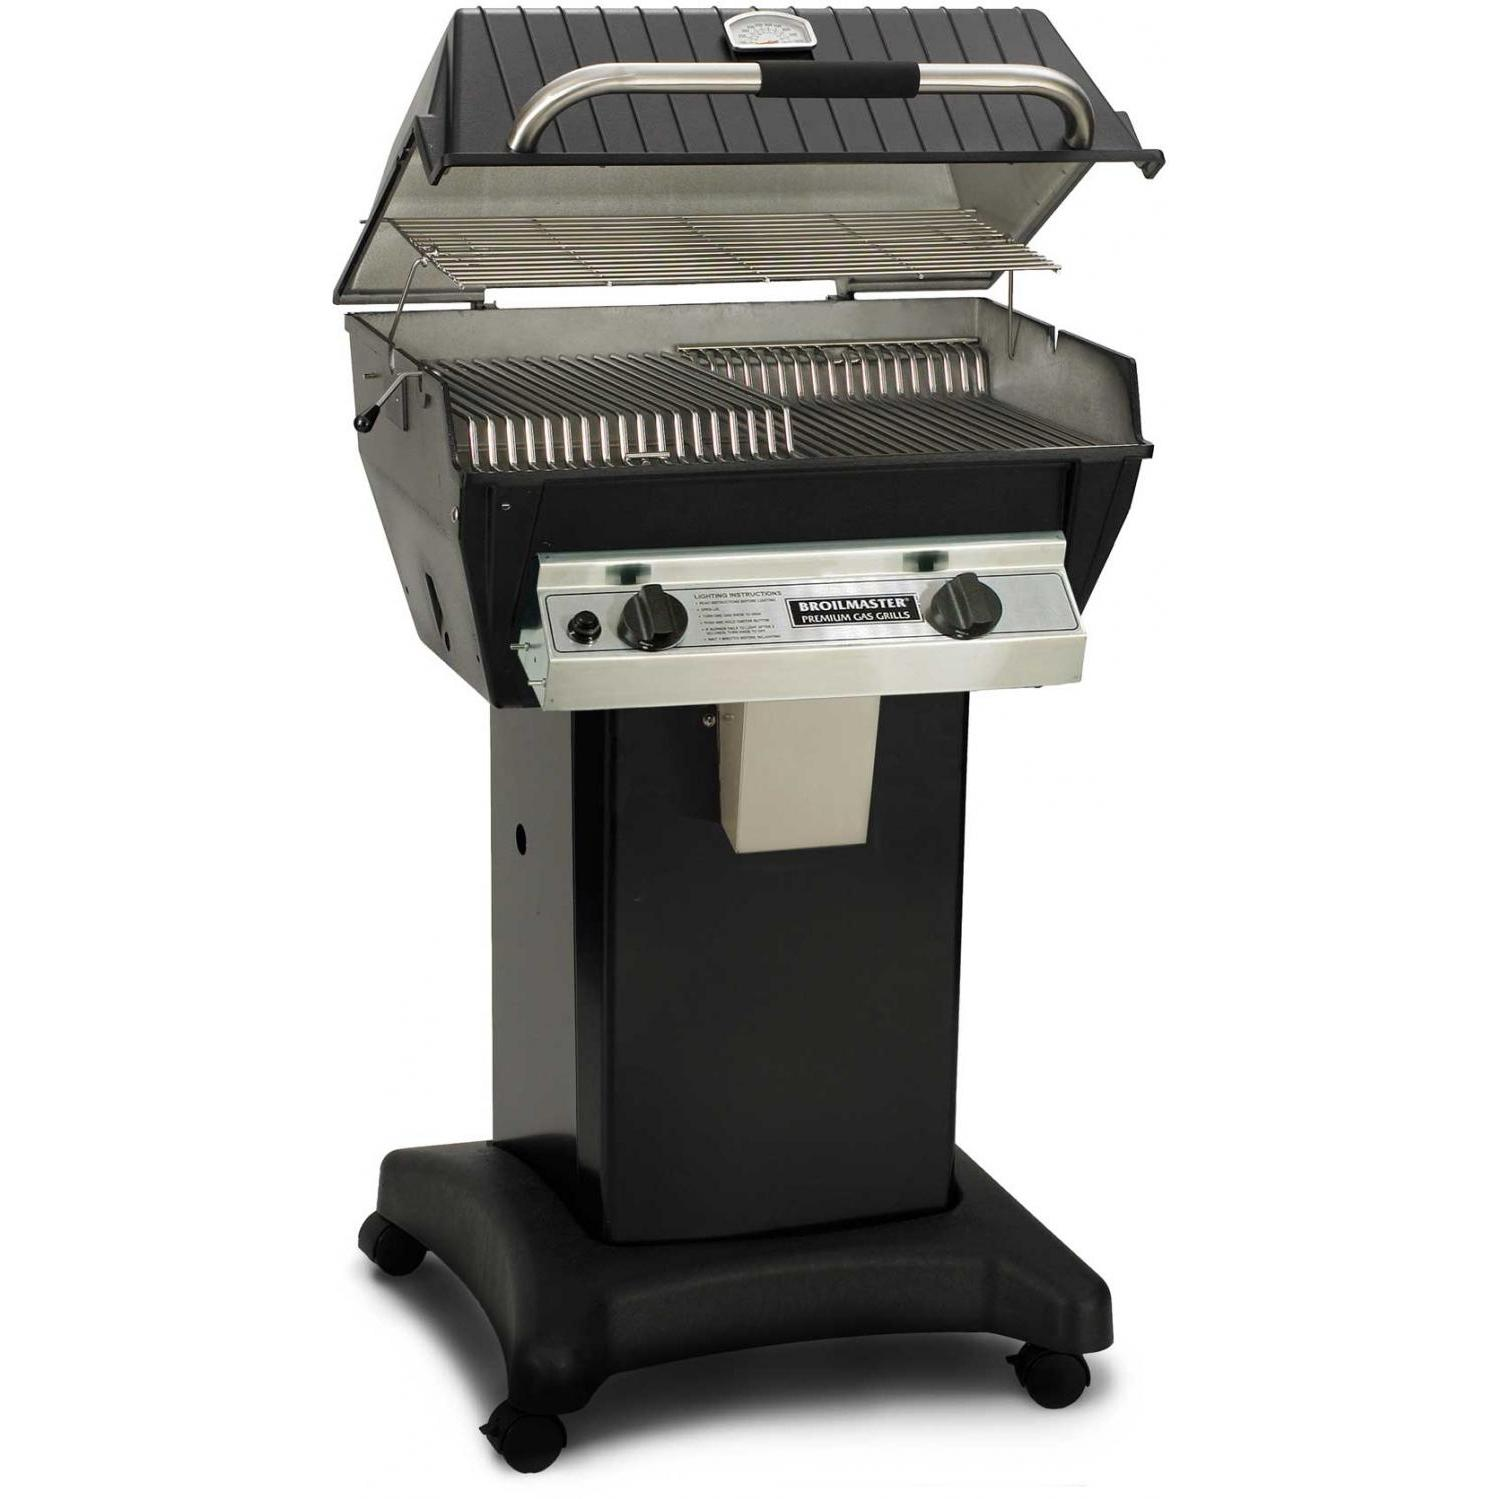 Broilmaster R3bn Infrared Combination Natural Gas Grill On Black Cart With Images Gas Grill Natural Gas Grill Propane Gas Grill